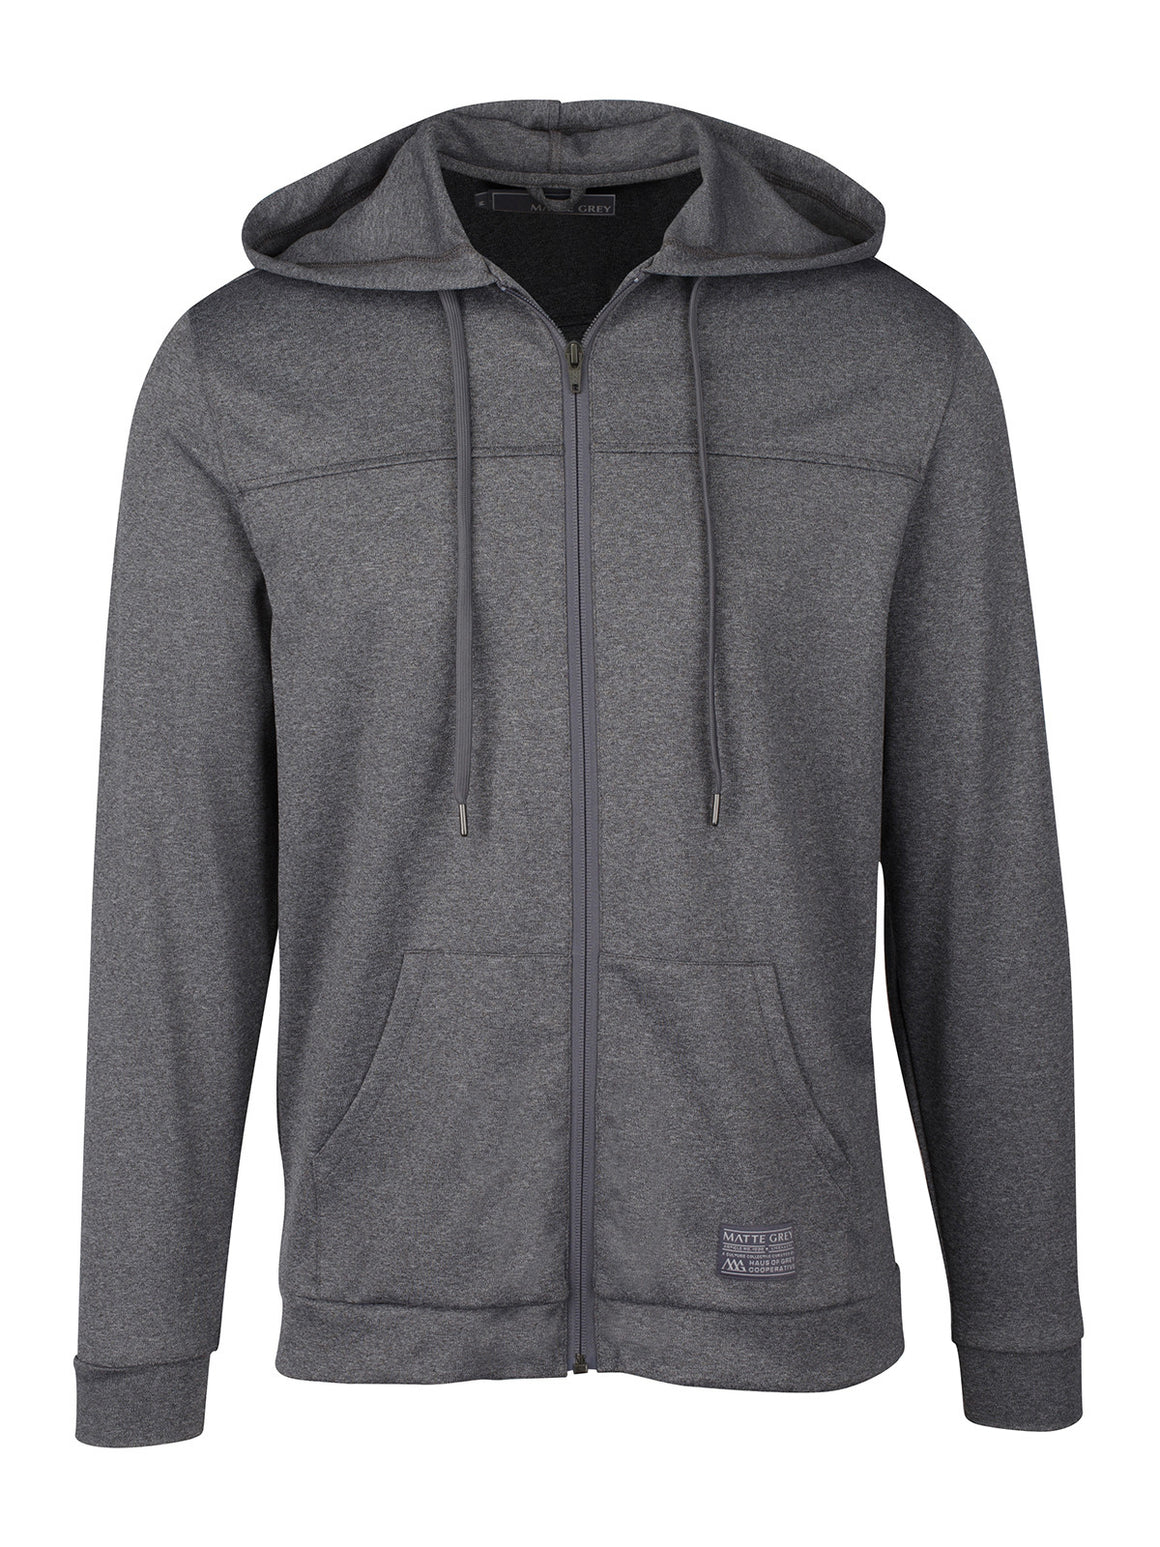 Badge Bandit Hoodie - Charcoal Heather